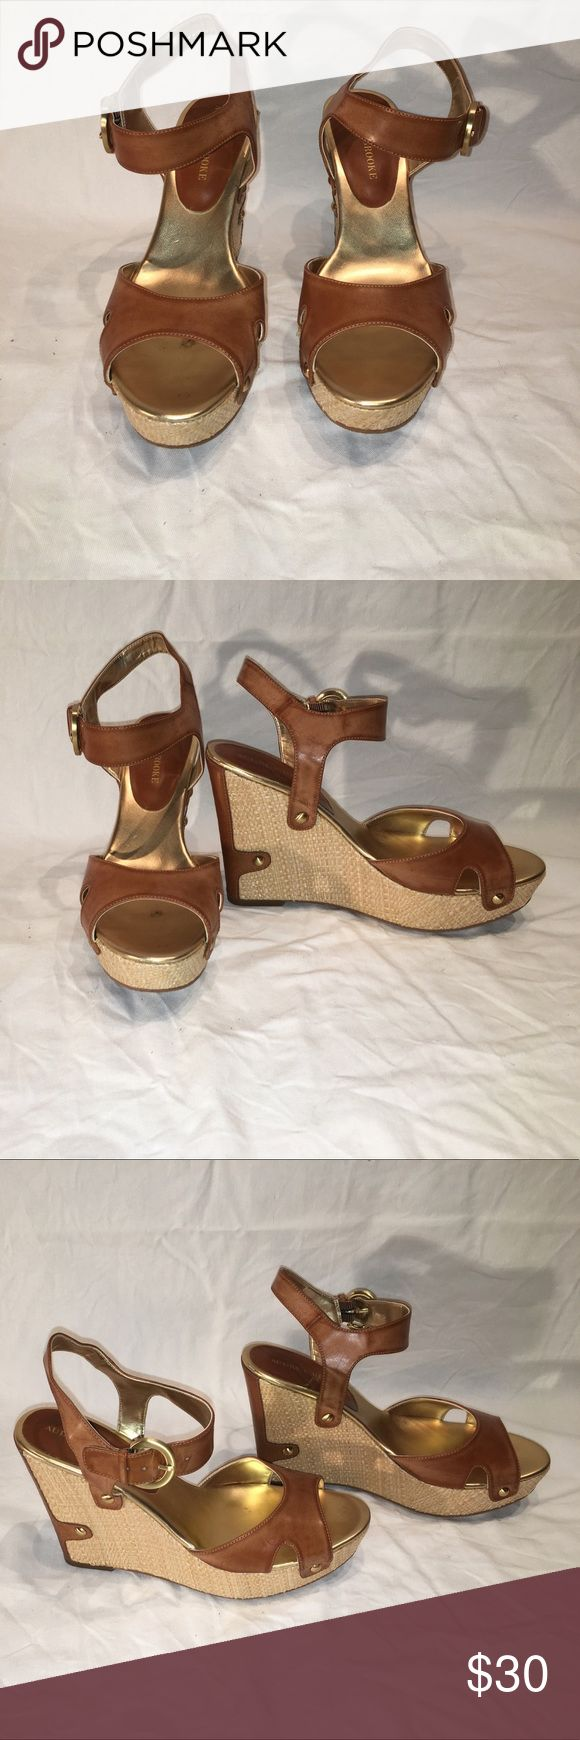 Brown leather wedge sandals Adorable brown leather wedge sandals with ankle straps and leather detail on heel. Hardly worn. Pretty brushed gold hardware. Audrey Brooke Shoes Sandals #sandalsheelswedge